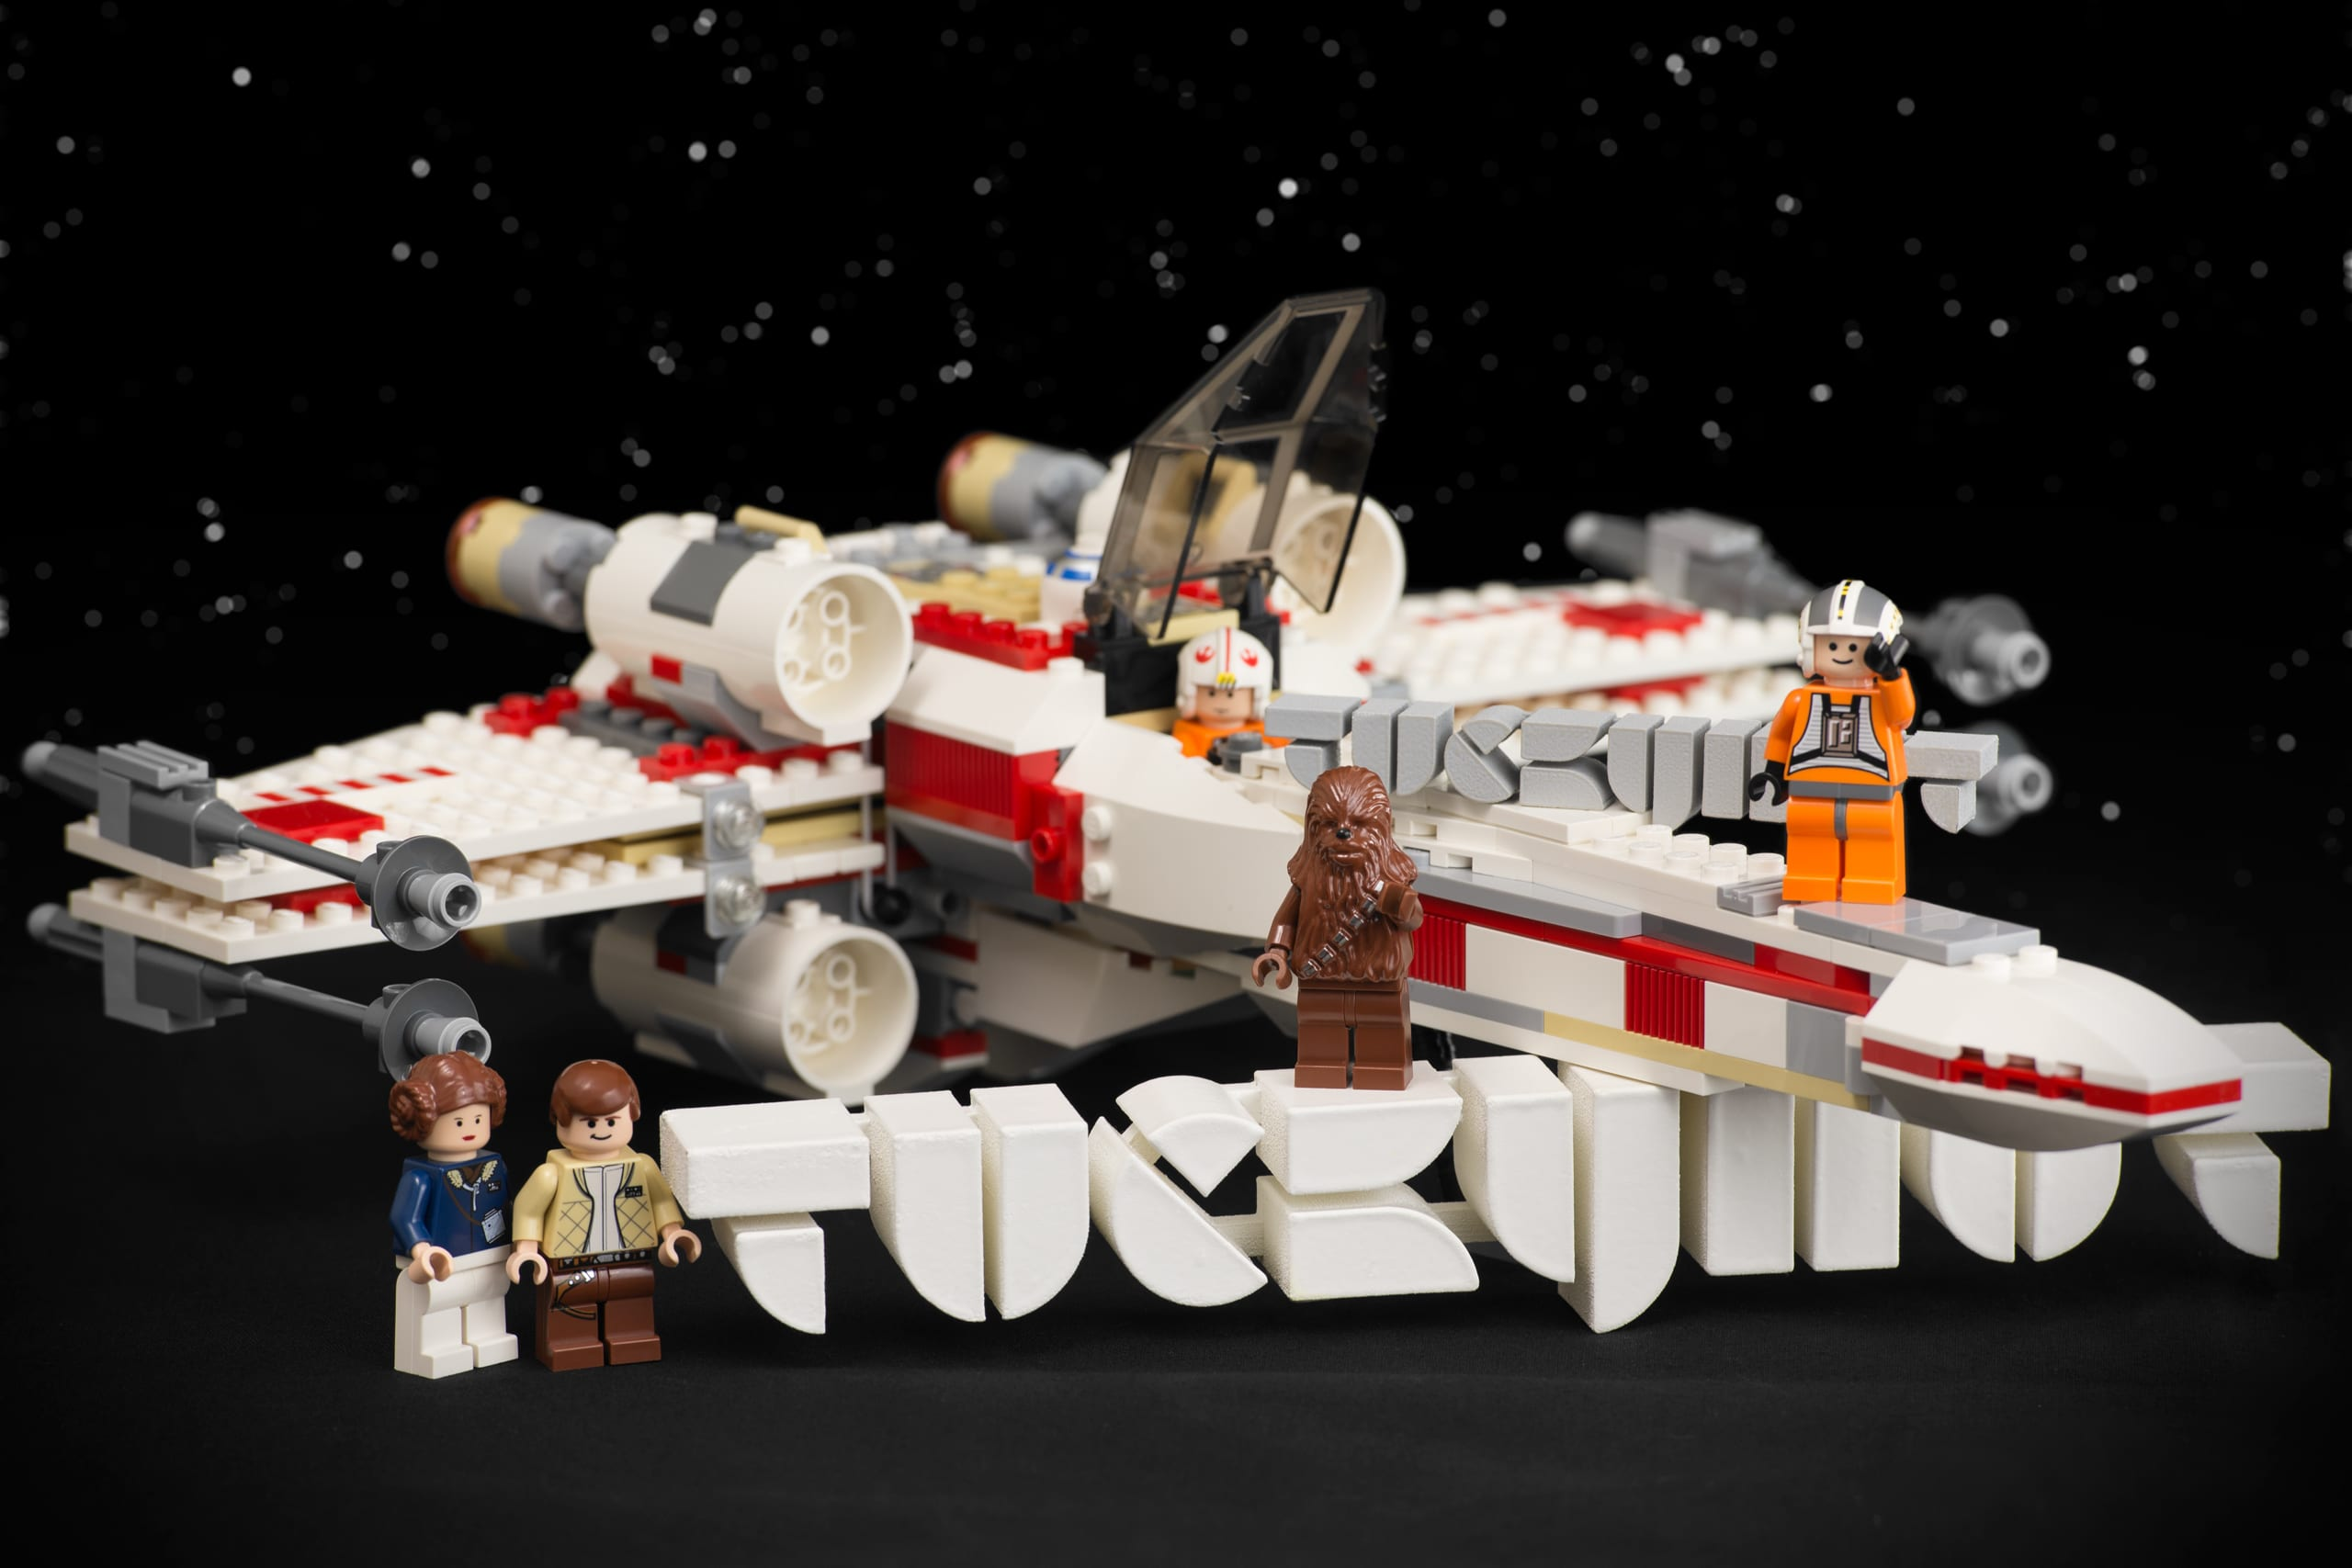 Tuckyhut 3D Logos with X-Wing & Crew